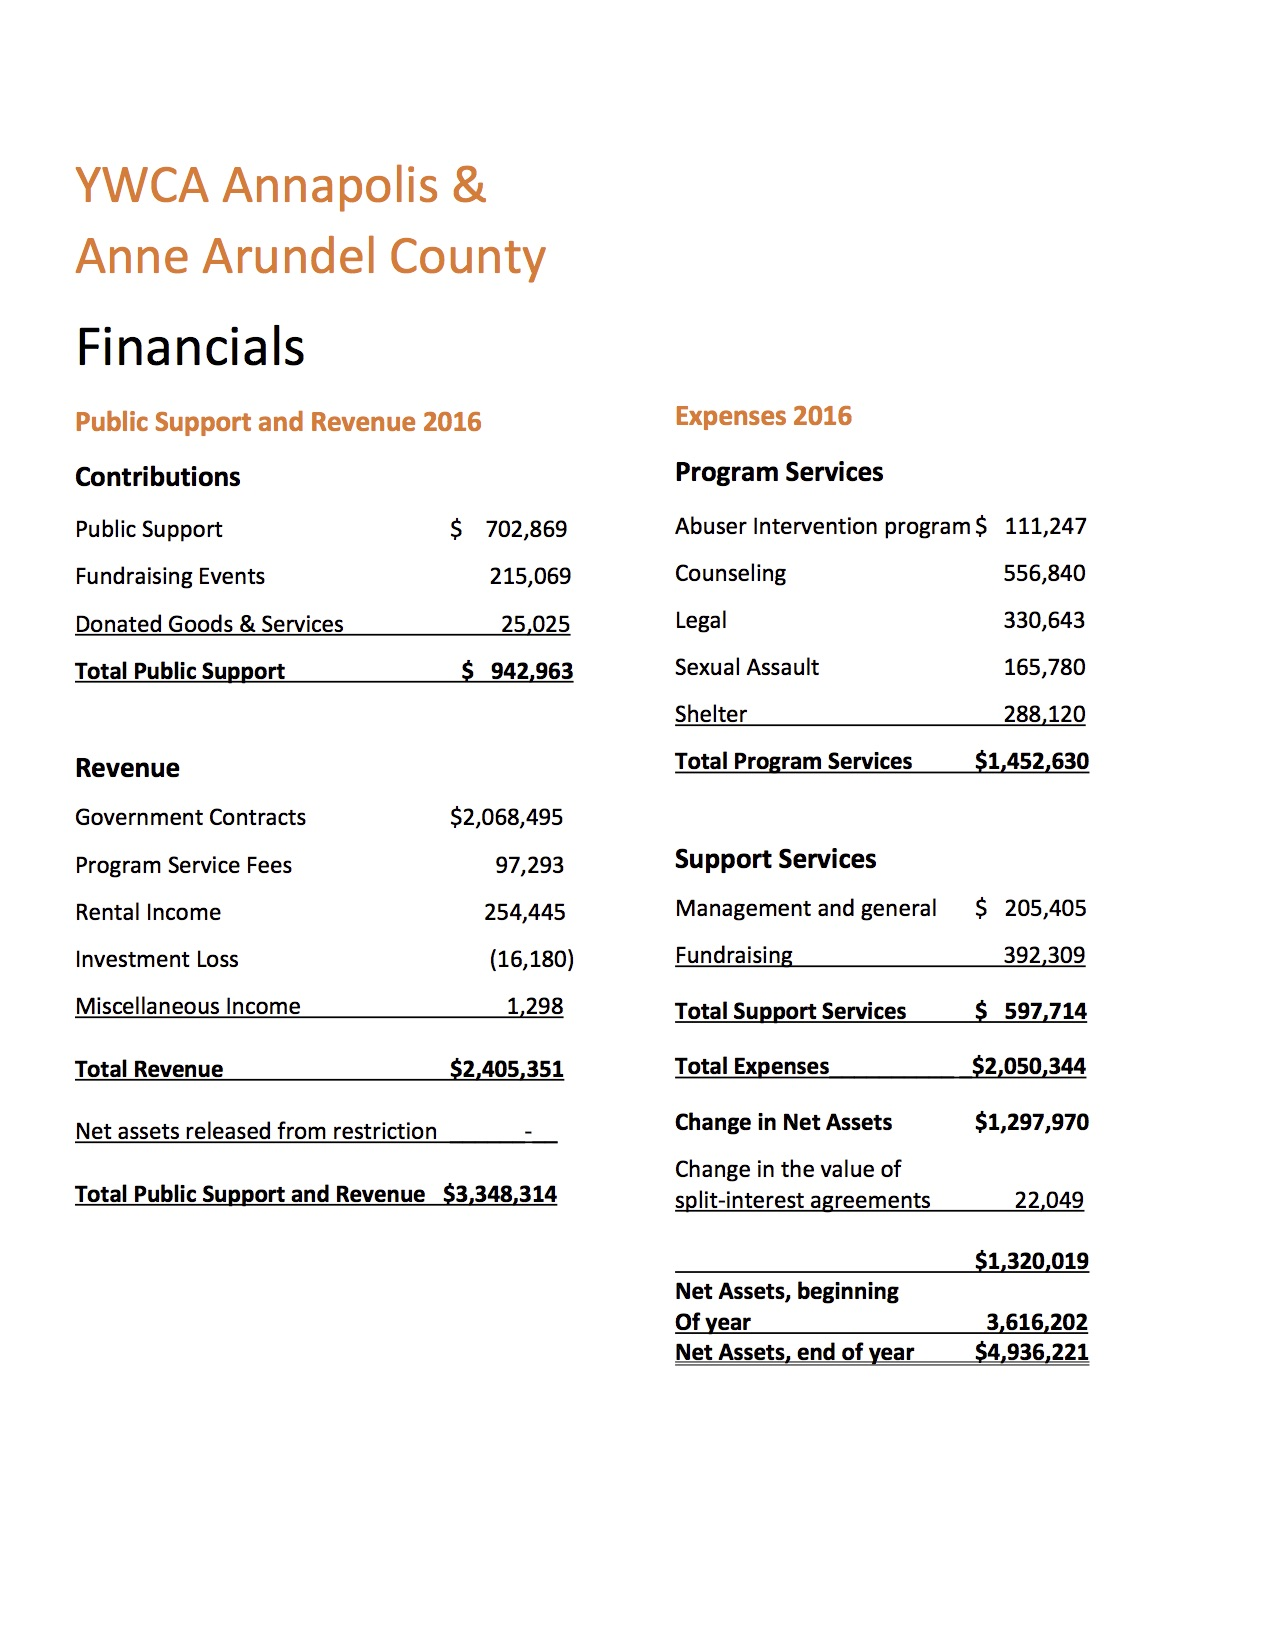 YWCA-Financial-Statement-6-30-16.jpg